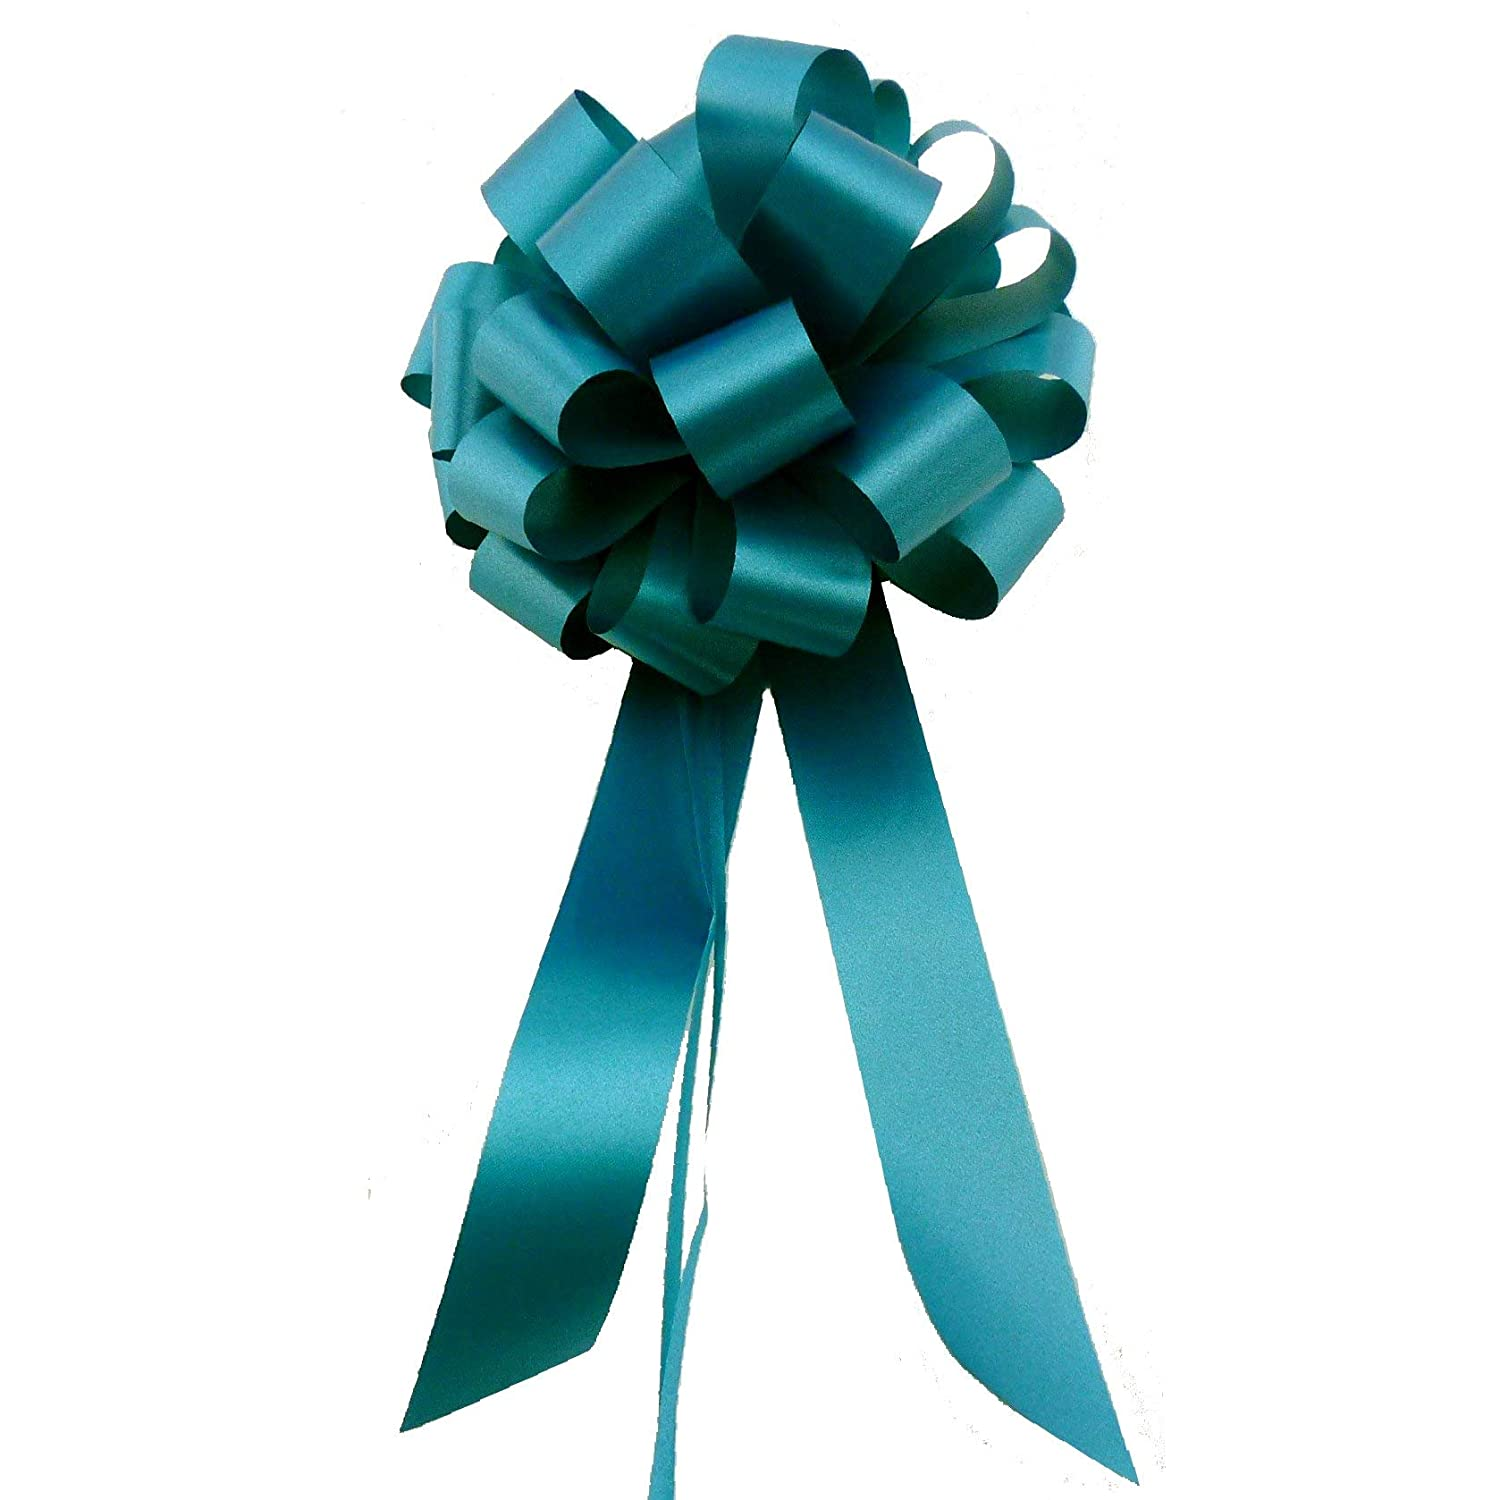 Gender Reveal Wide 8 in Summer 20 cm Xmas Easter Birthday Set of 6 Christmas Gift Bows Boxing Day Sky Blue Gift Bows with Tails Spring Decor Baby Shower